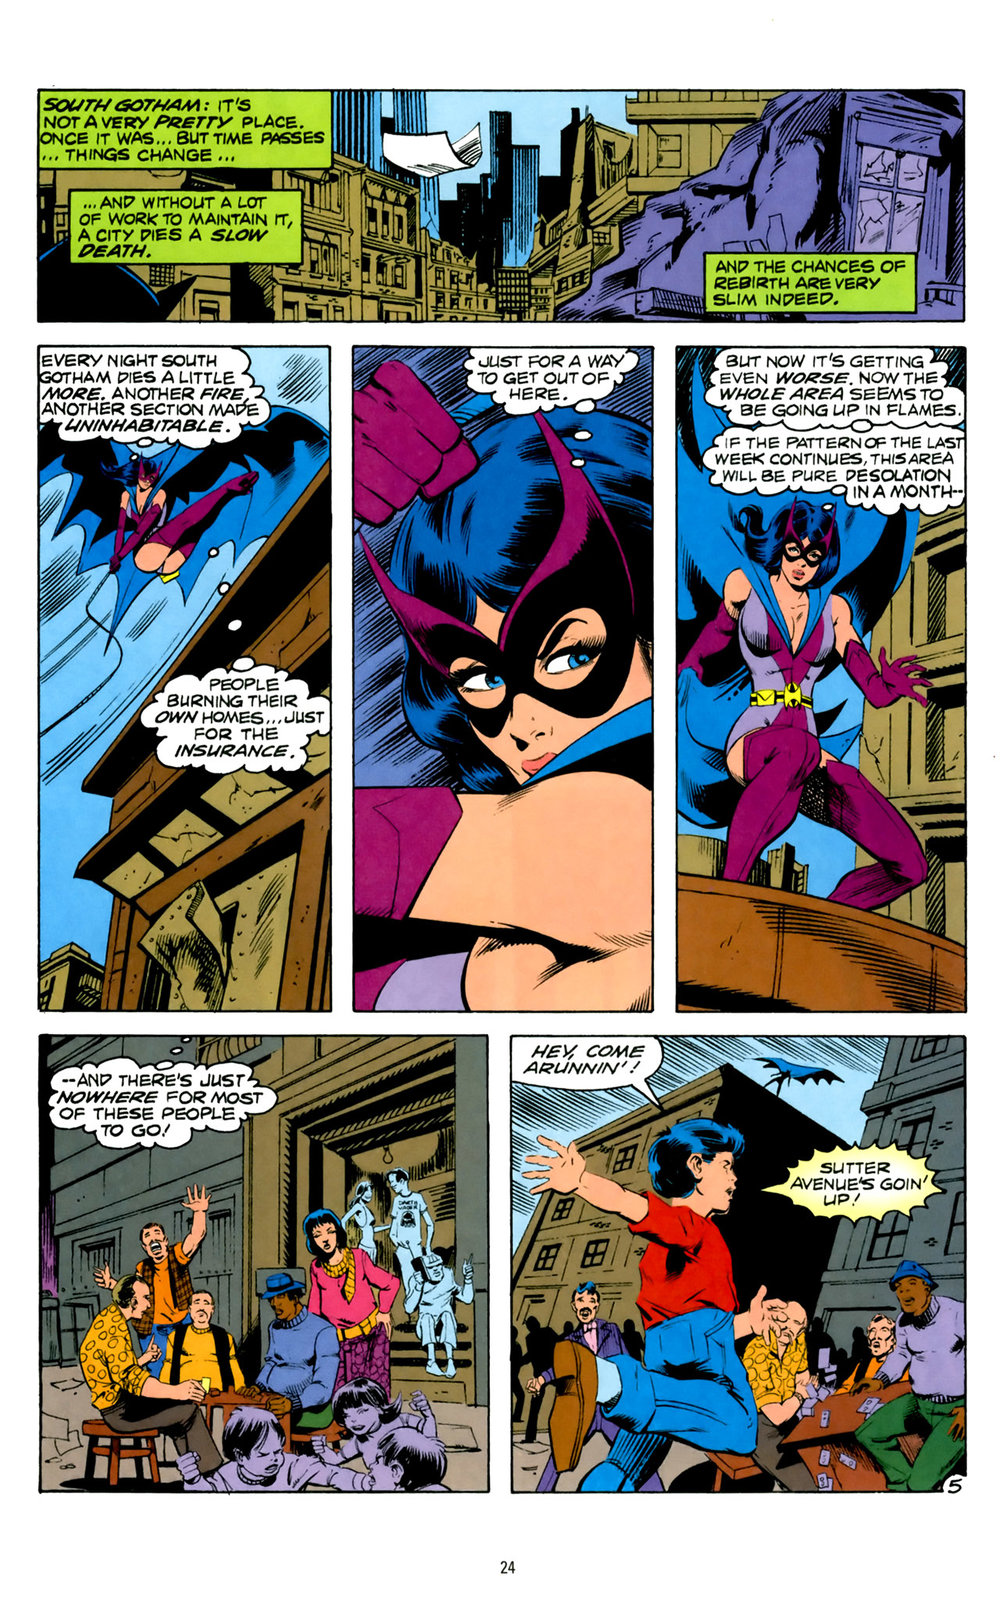 Huntress bertinelli huntress helena wayne bertinelli